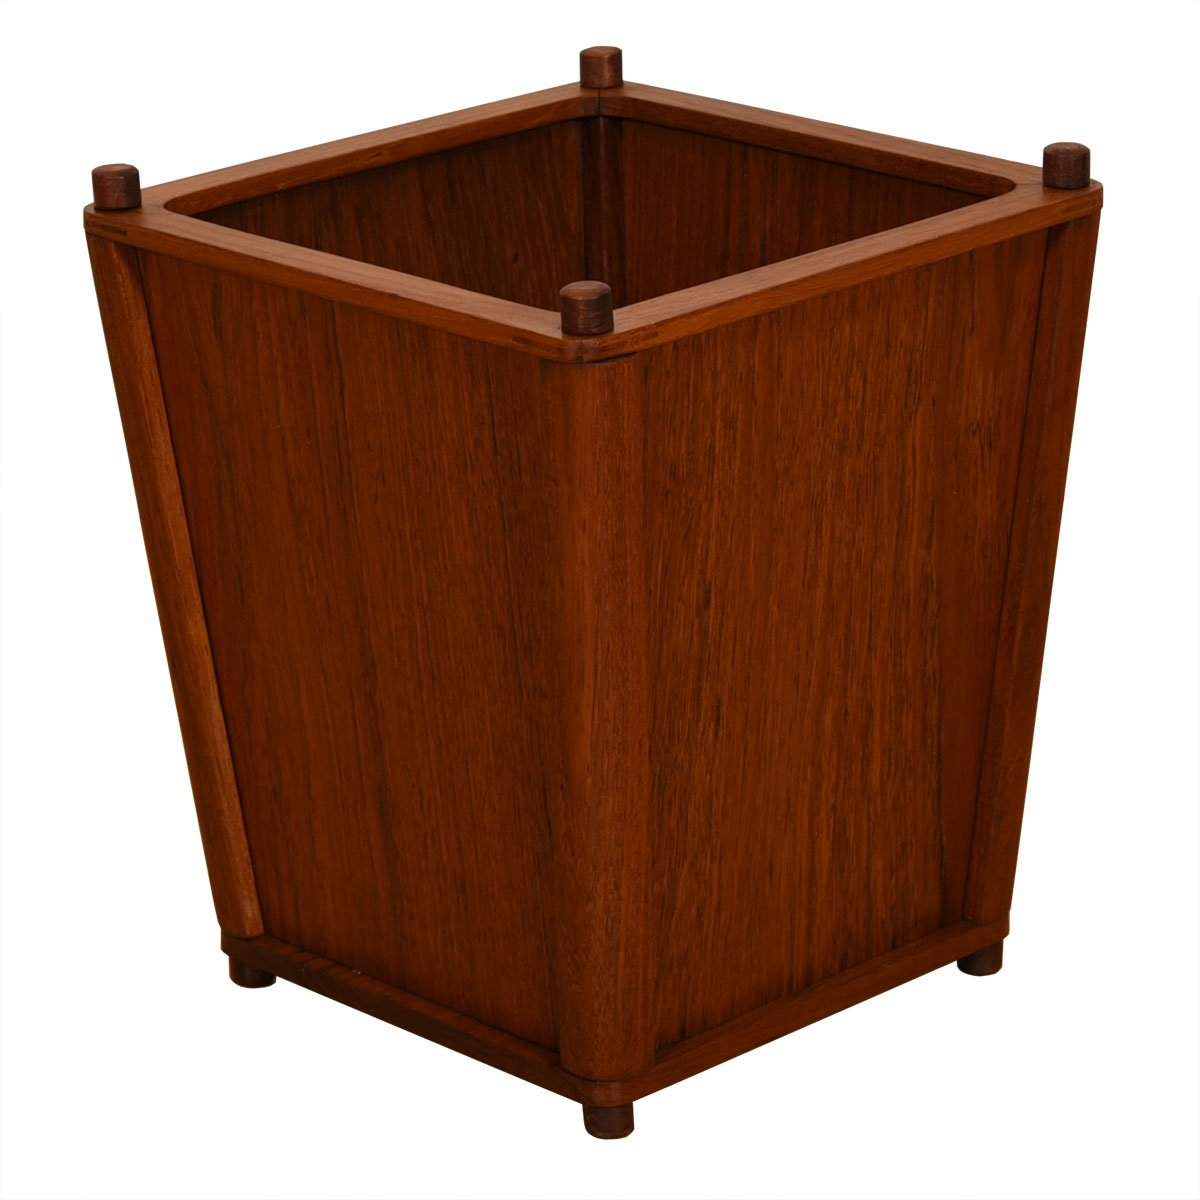 Danish Teak Compact Waste Basket